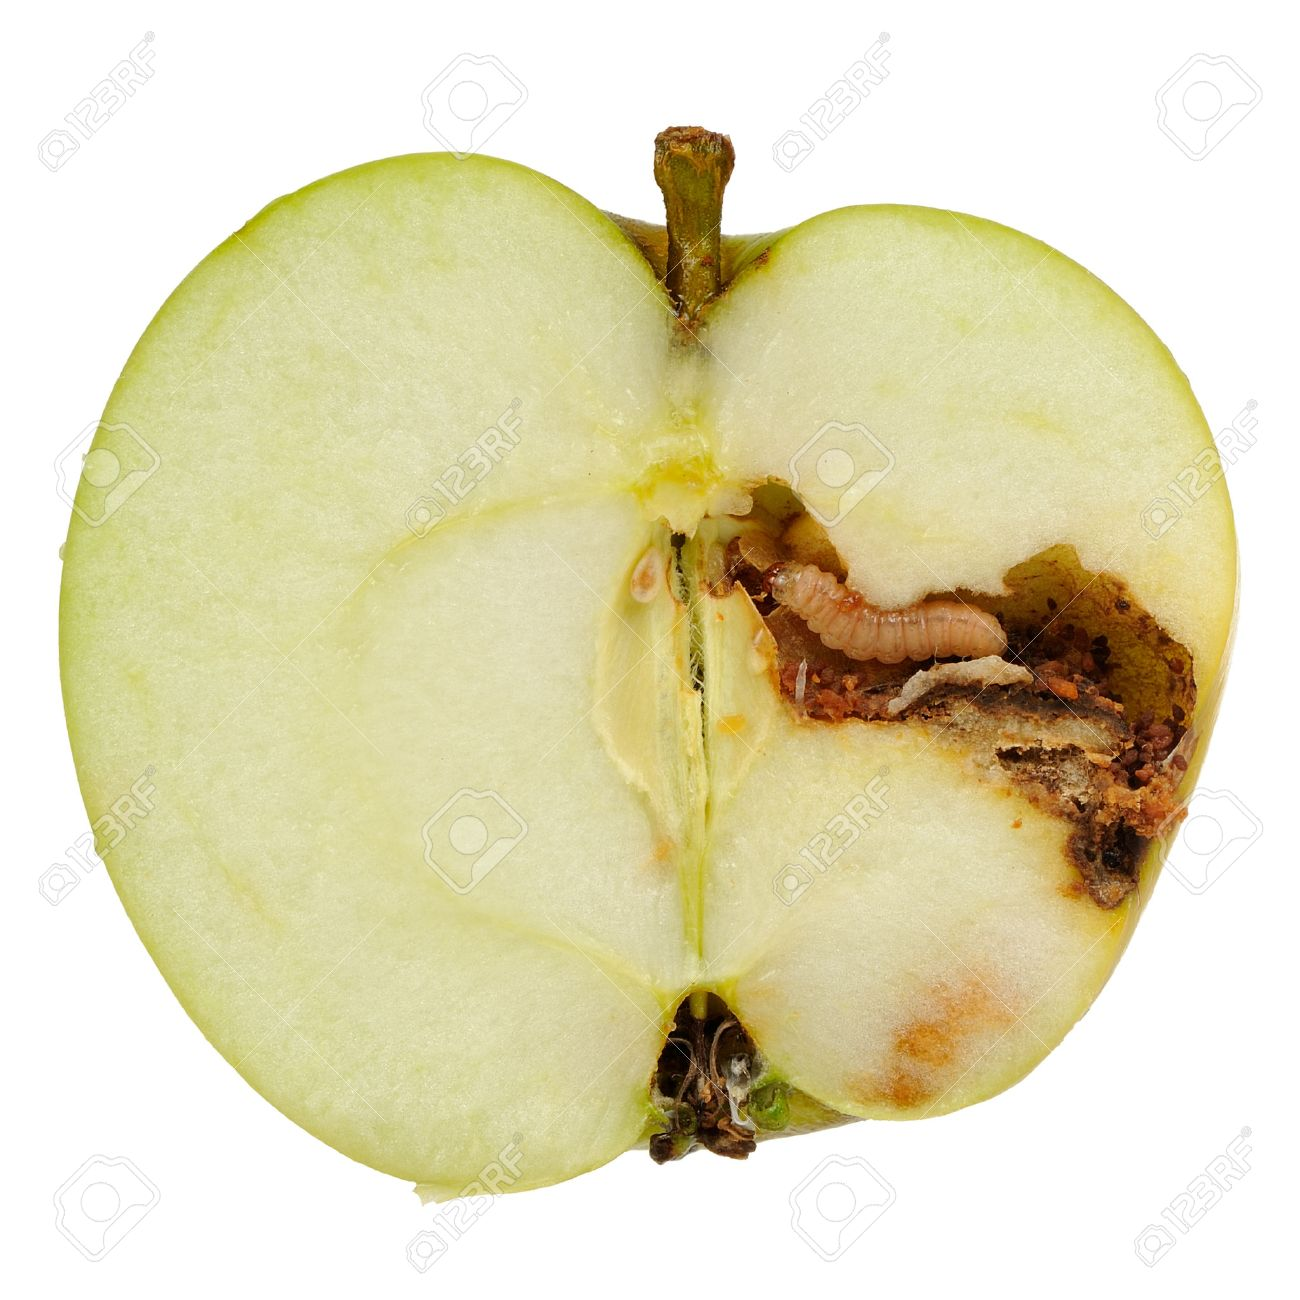 A Worm Apple Maggot Larva Eating An Apple Cut In Half Isolated